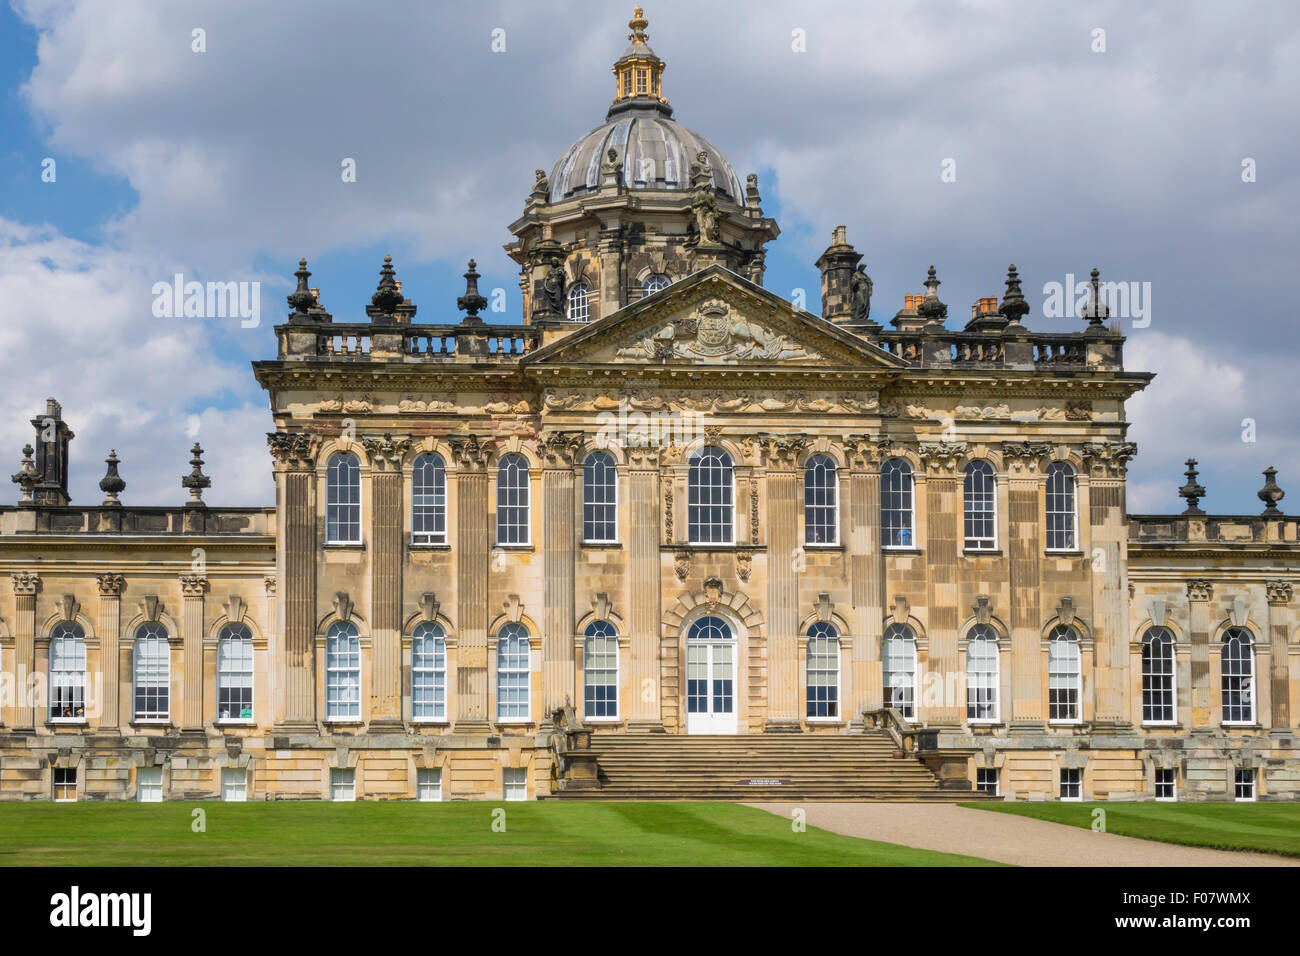 South aspect of Castle Howard, stately home of Simon Howard, 'Earl of Carlisle', near Malton, North Yorkshire, - Stock Image